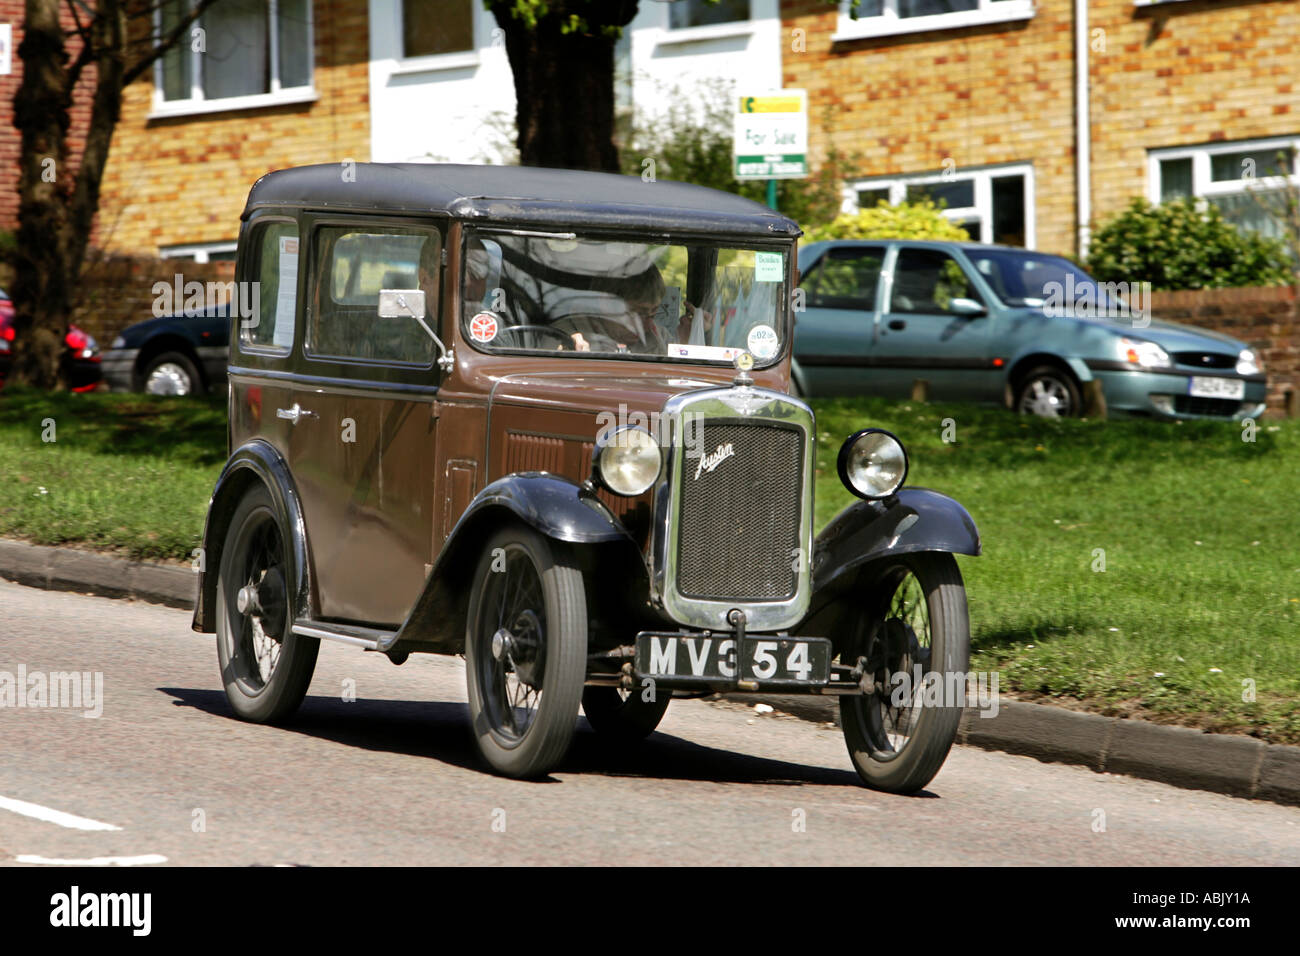 Austin London racing competition old car classic history vehicle ...